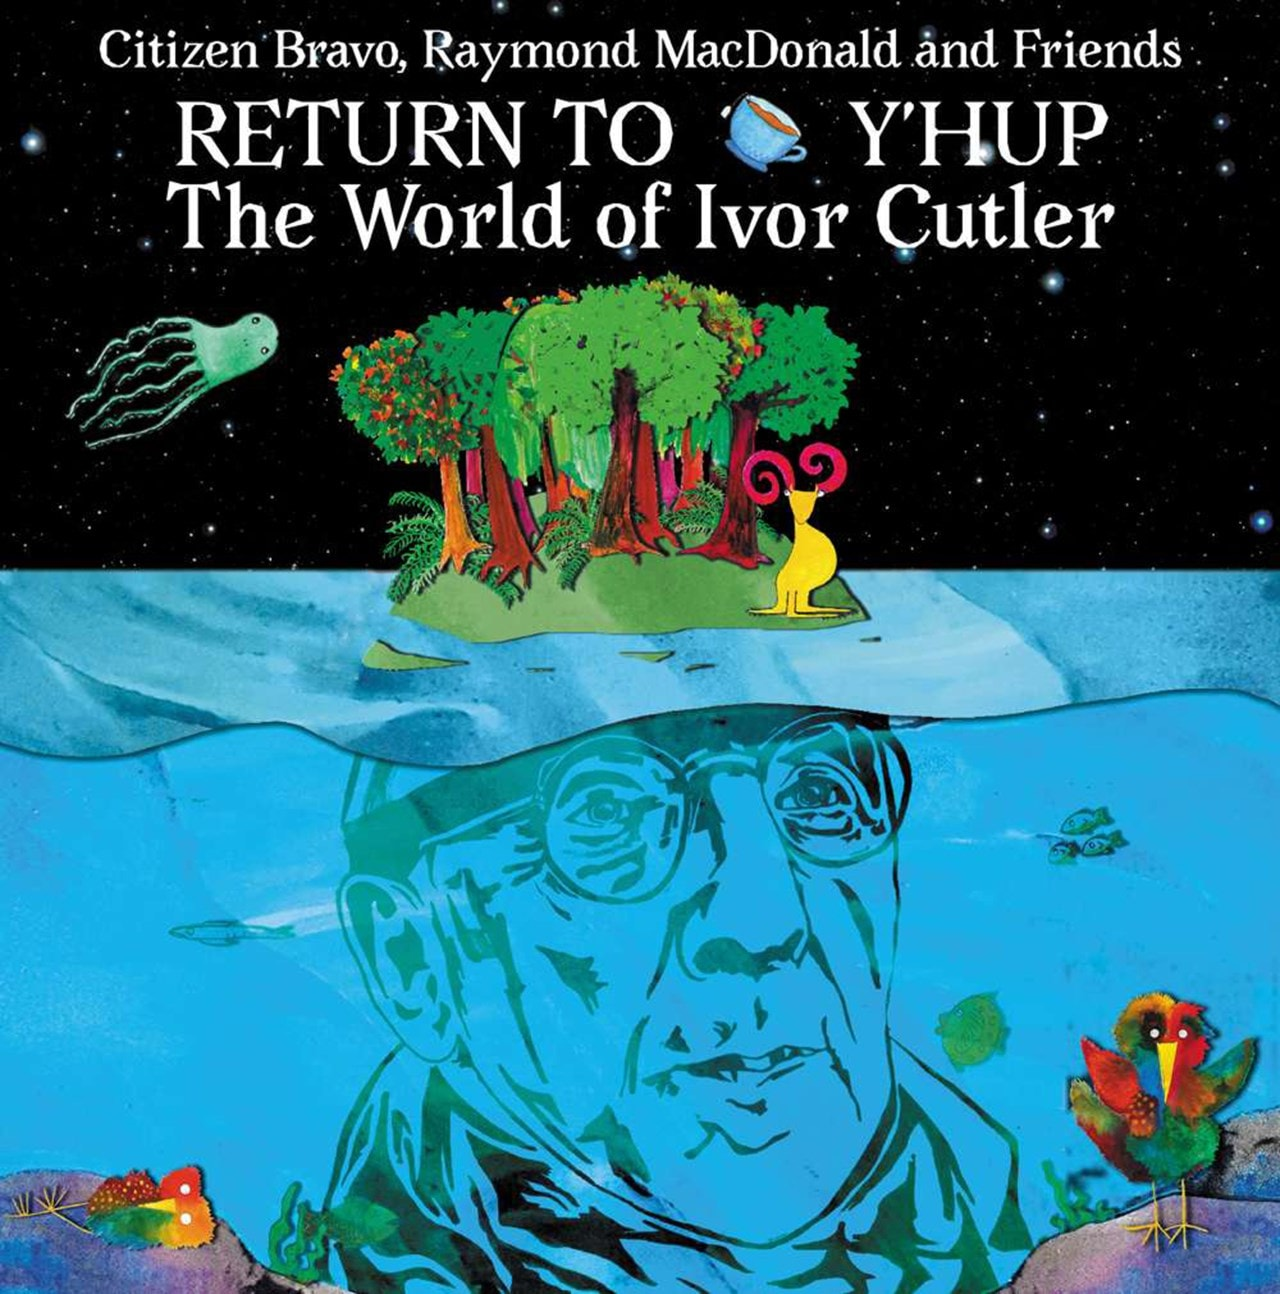 Return to Y'hup: The Worl of Ivor Cutler - 1